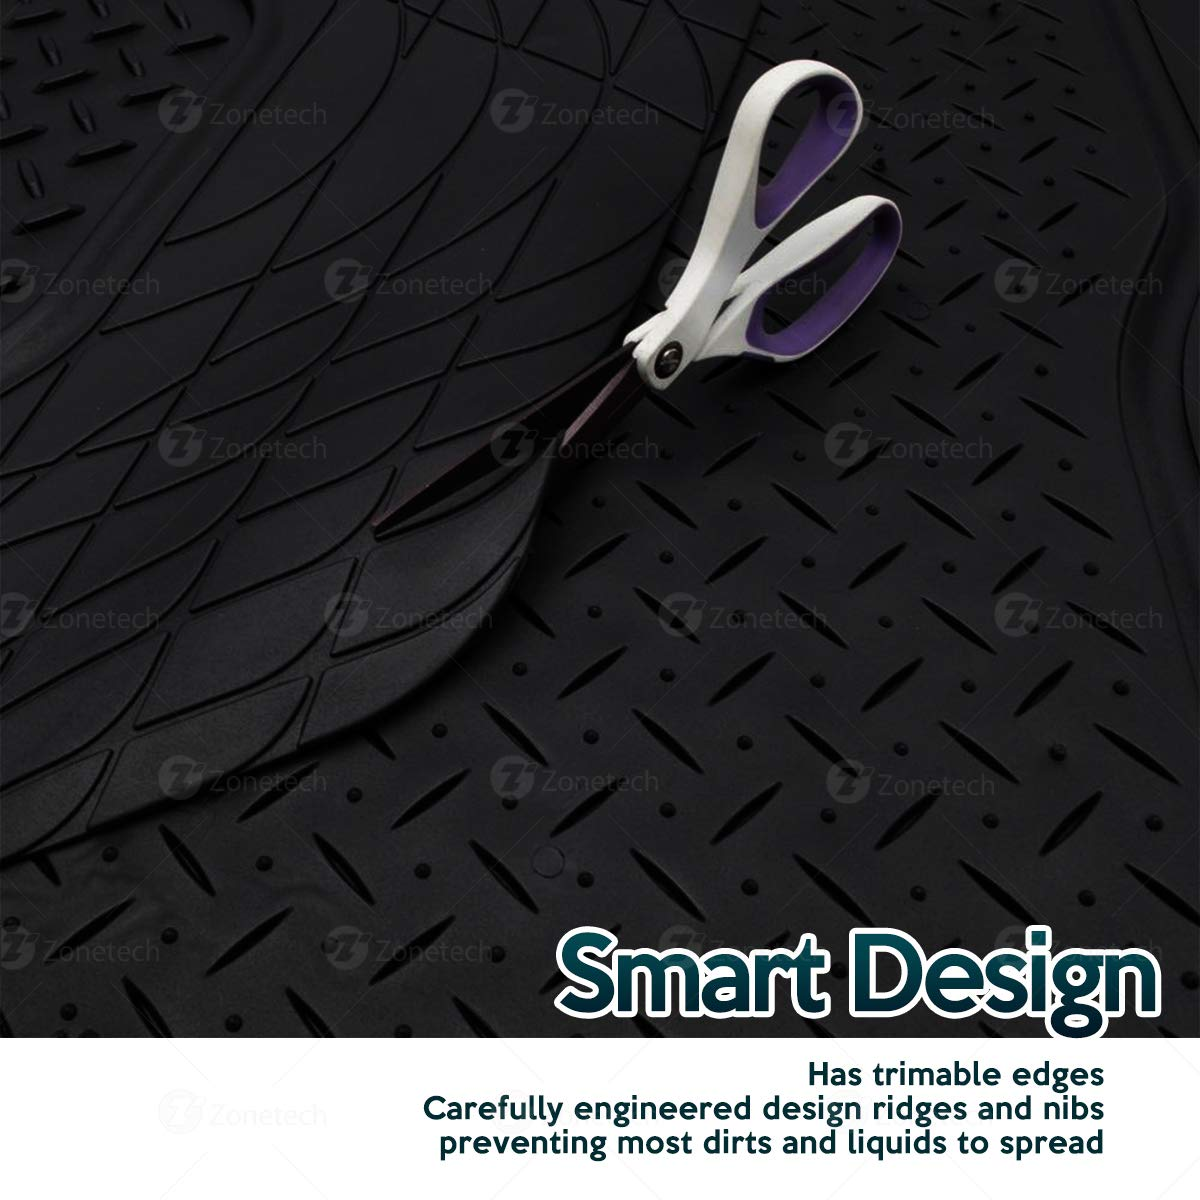 Cargo Floor Mats Black Zone Tech Trimmable for Custom Fit